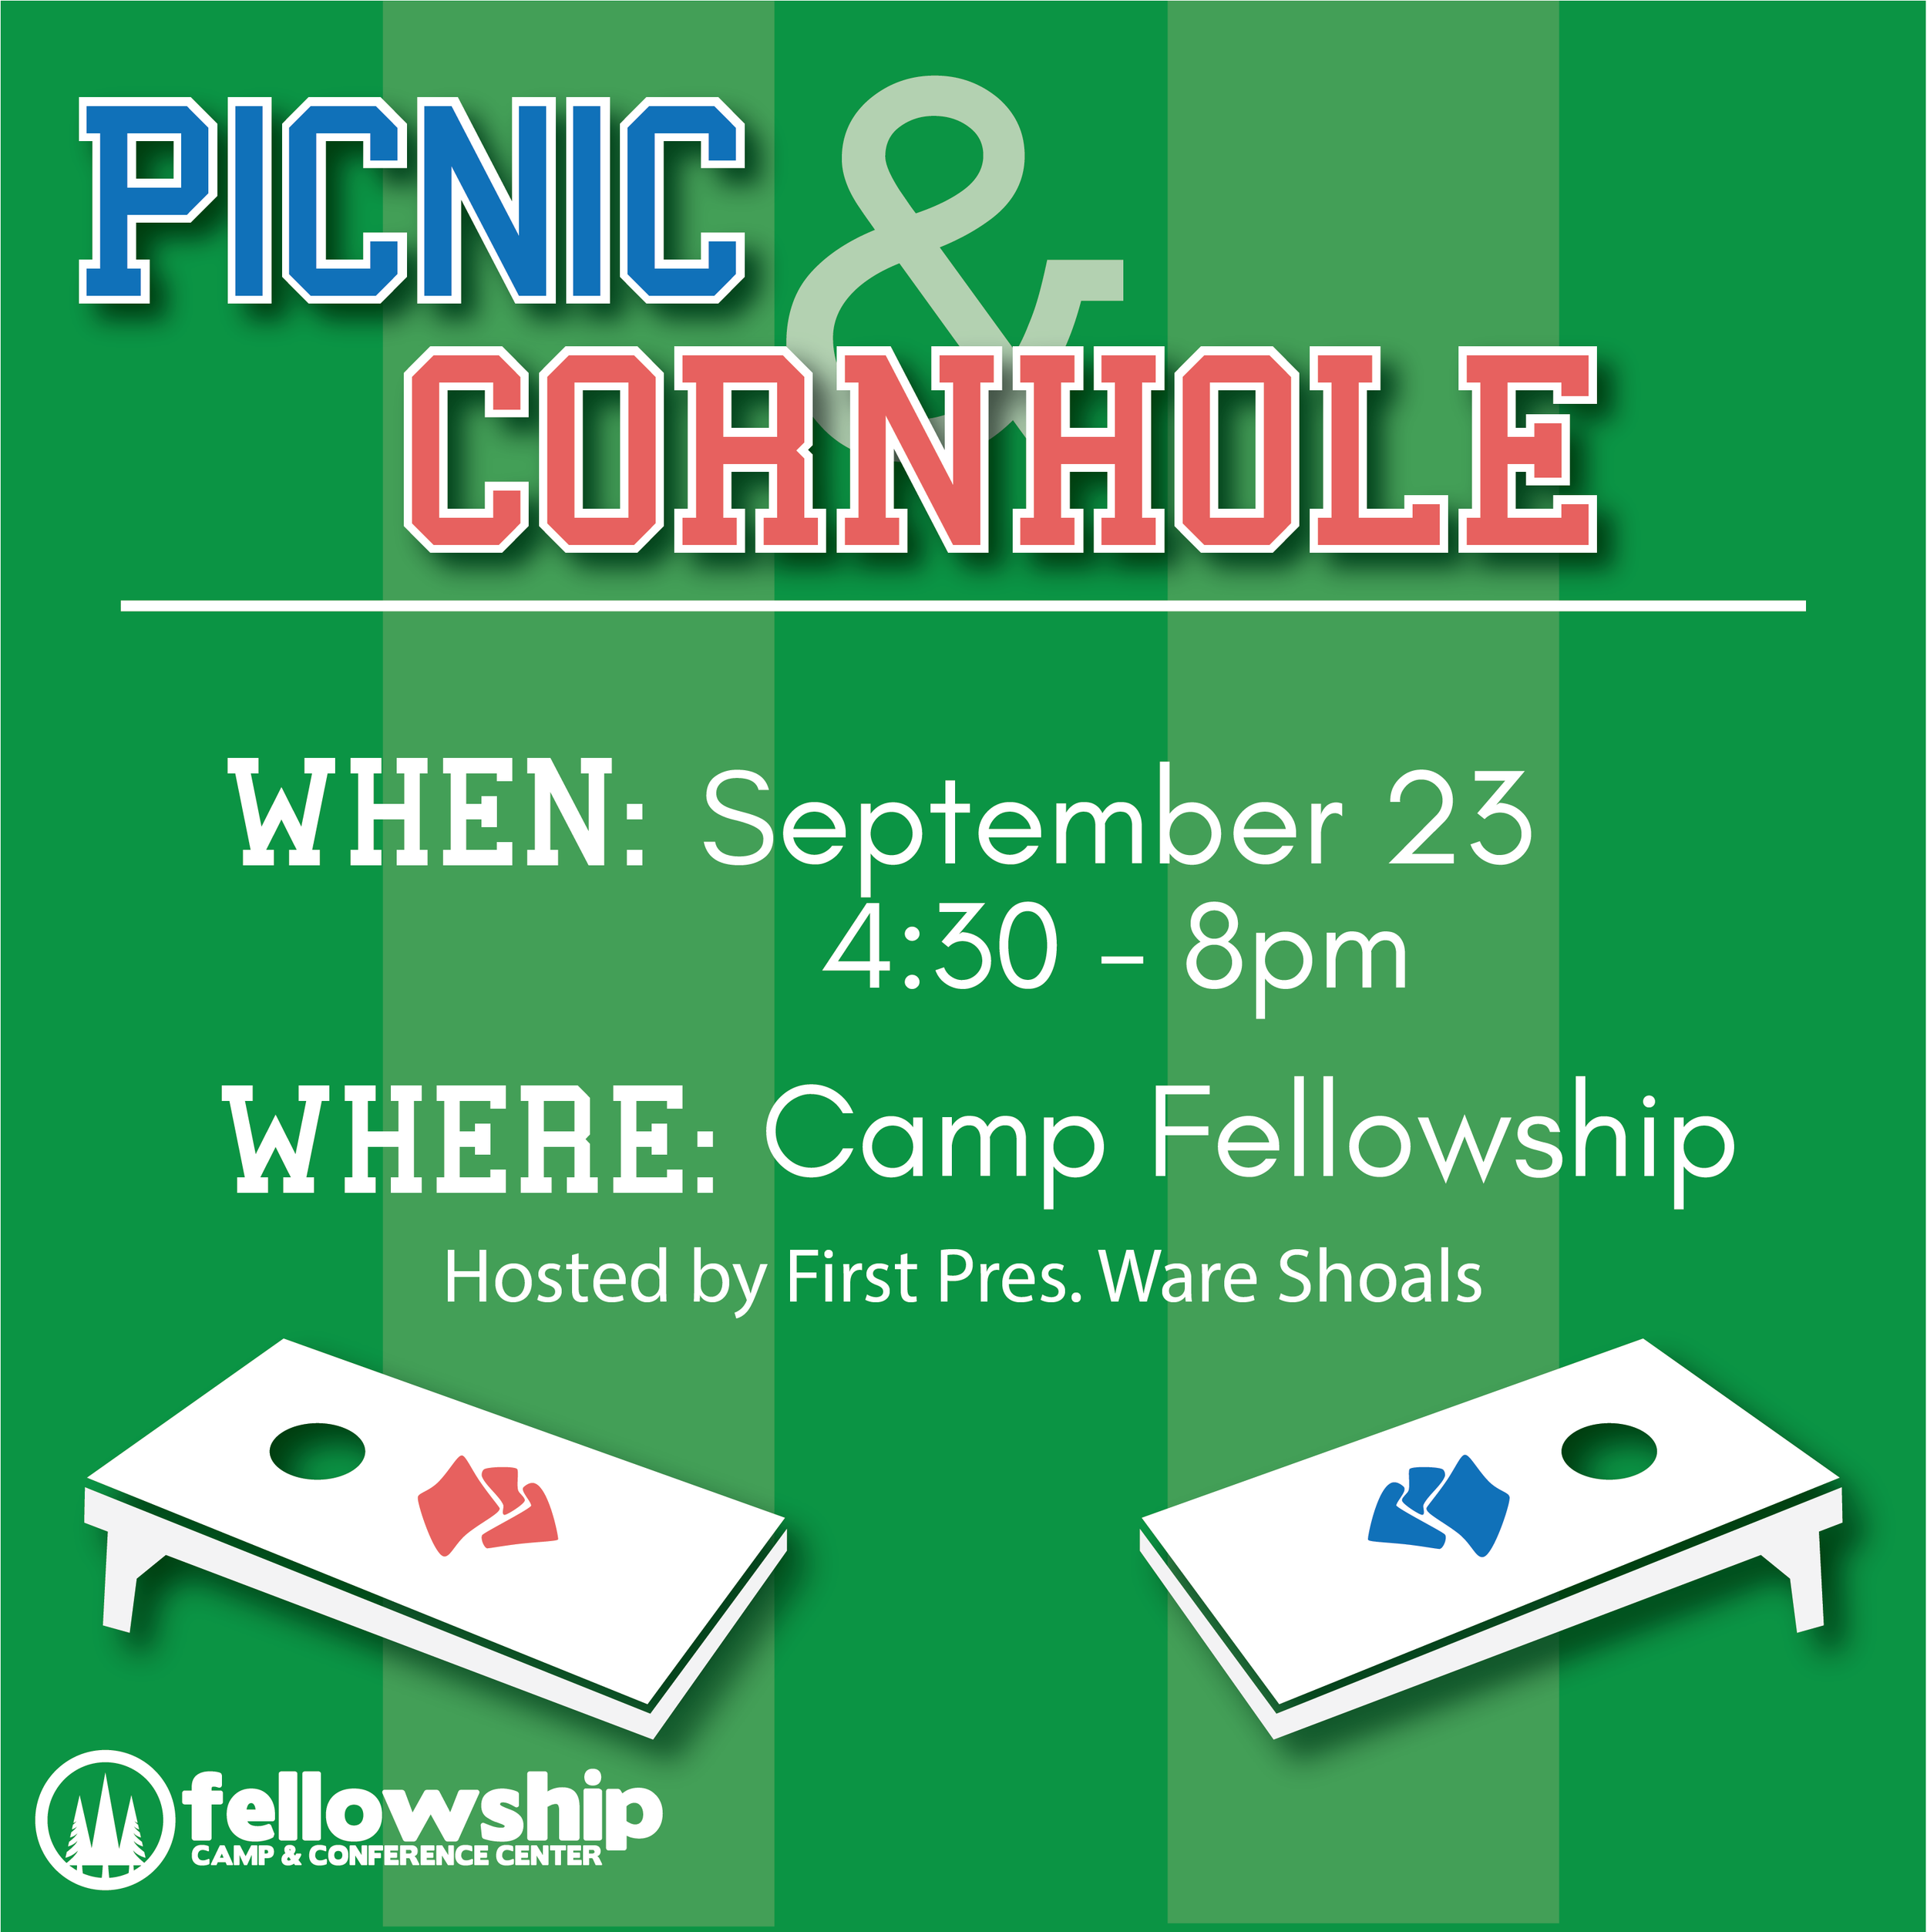 cornhole and picnic.png